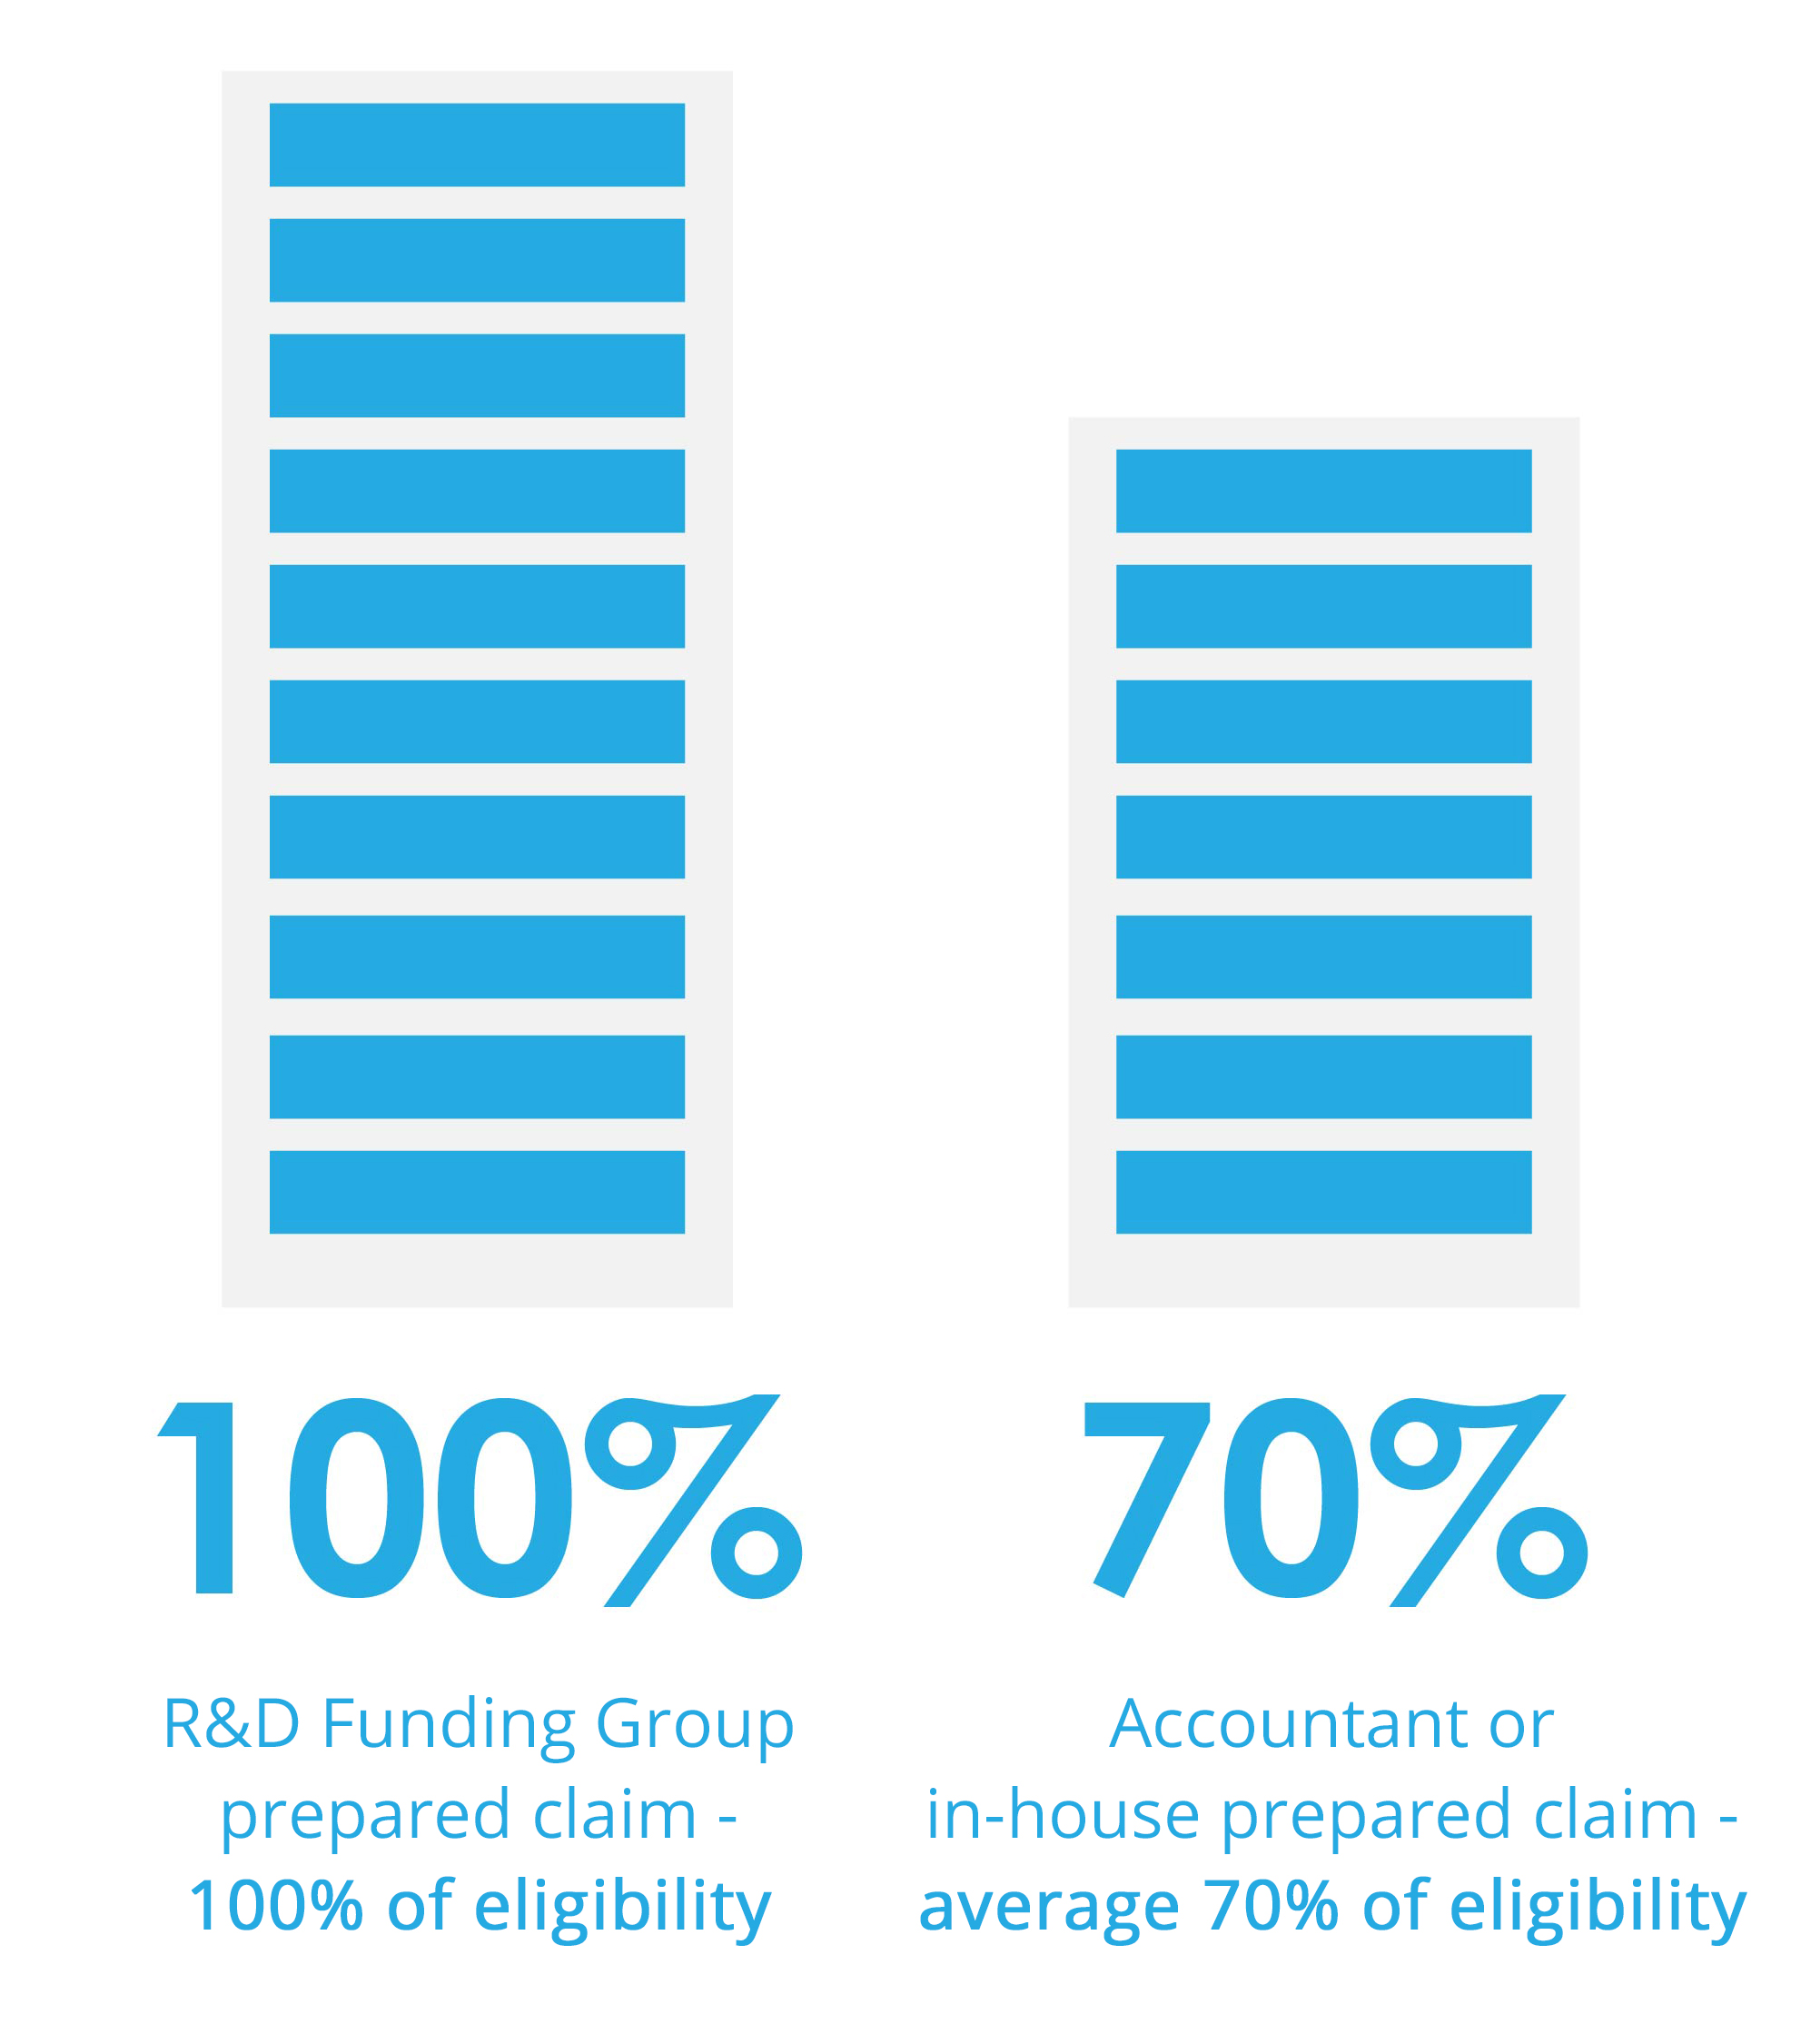 R&D funding group prepared claim